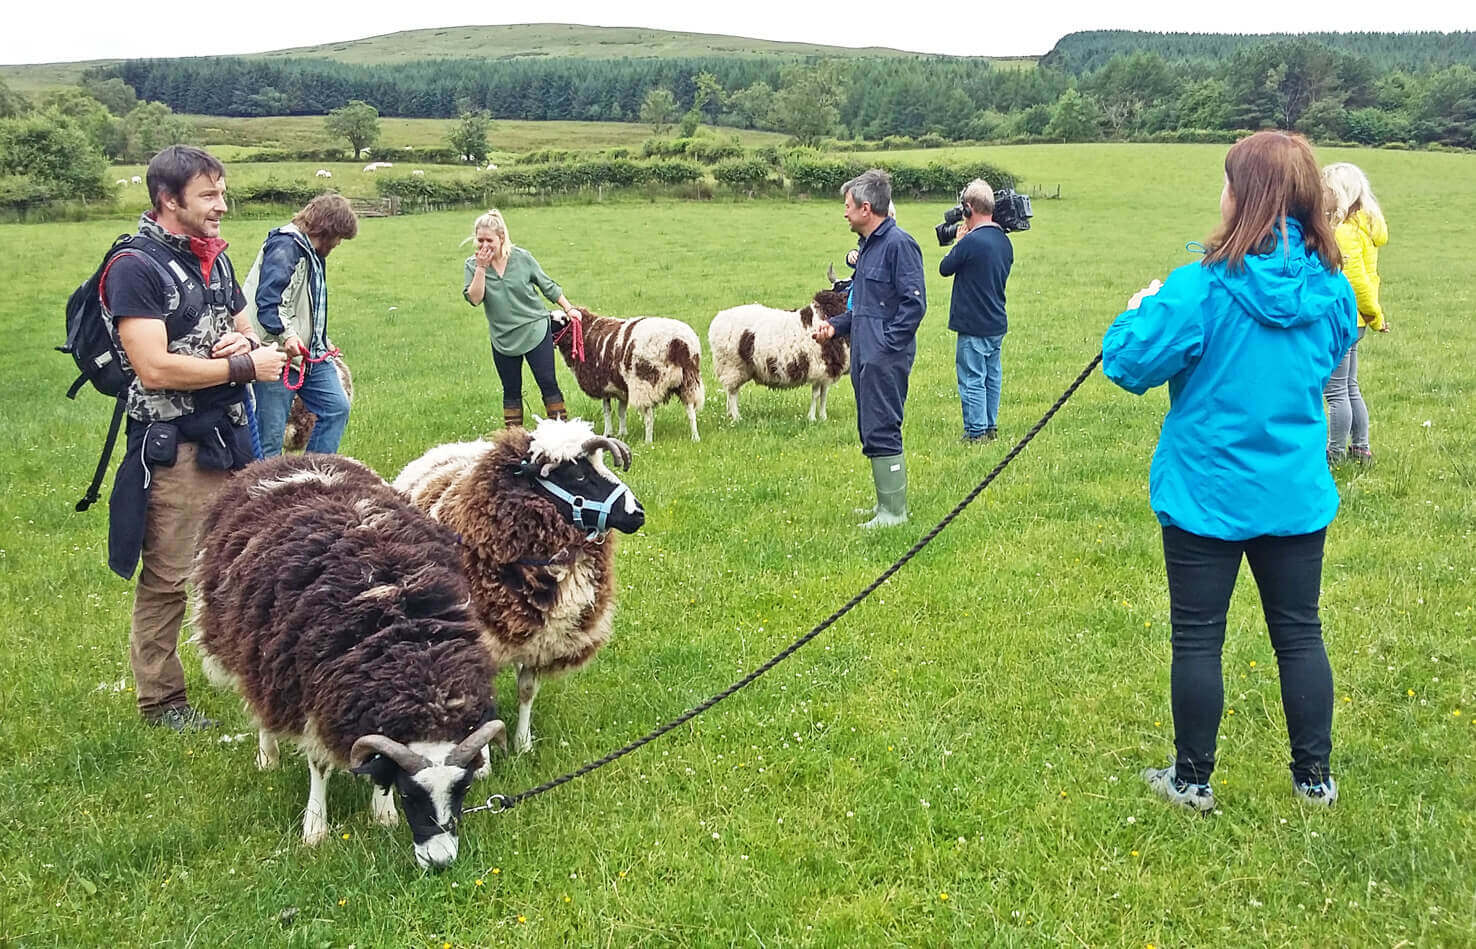 Jacob Sheep Trekking on the Brecon Beacons with Good Day Out